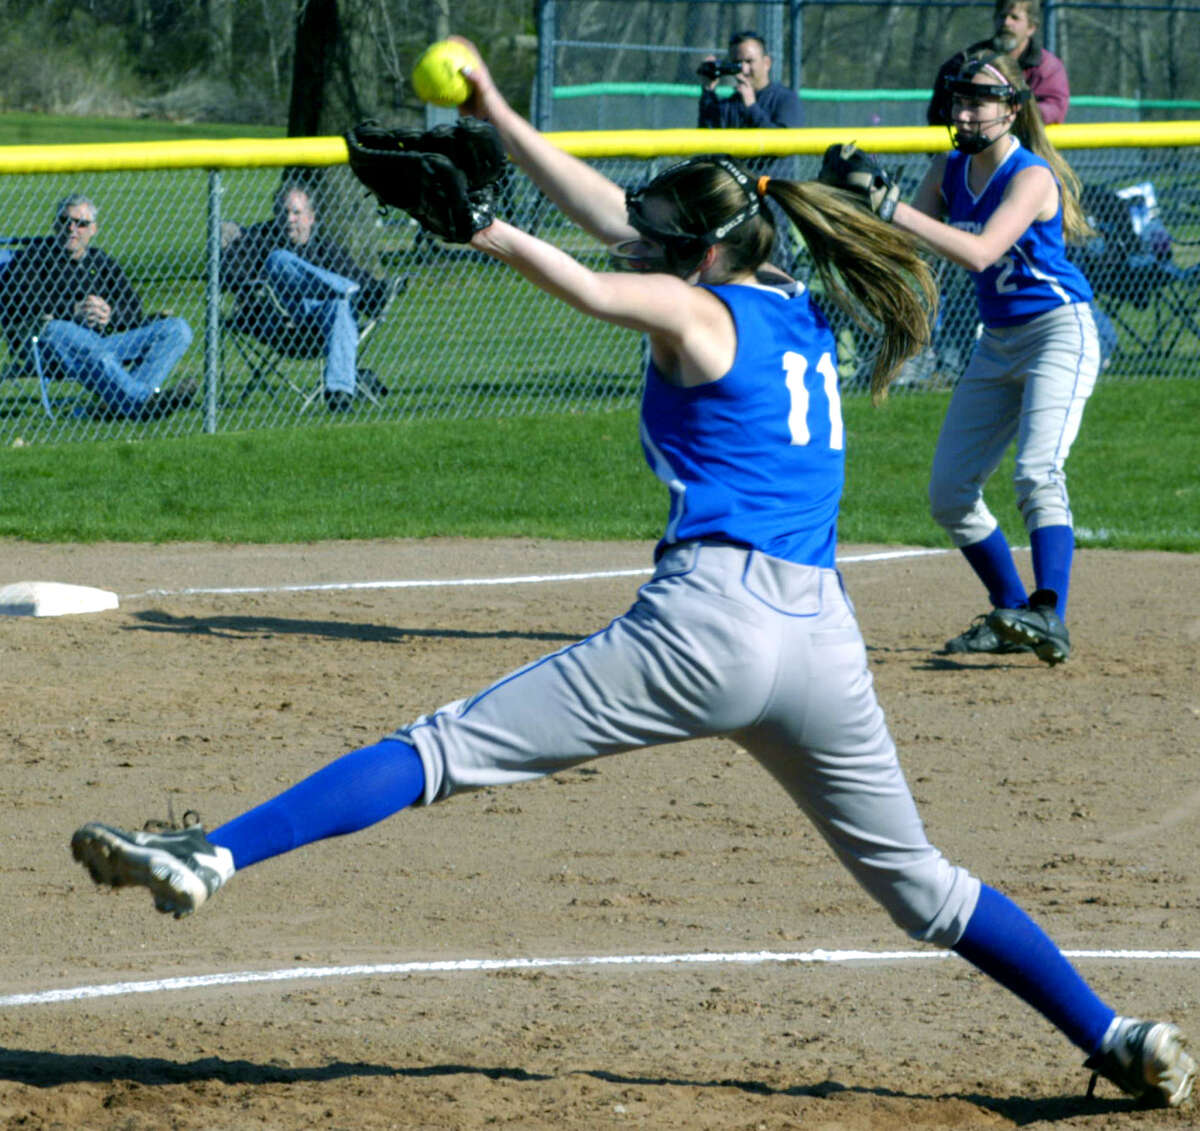 The Spartans' Kelsey Johnson winds for a pitch to home plate as teammate Allison Drzal plays 'D' at third base for Shepaug Valley High School softball, May 2013